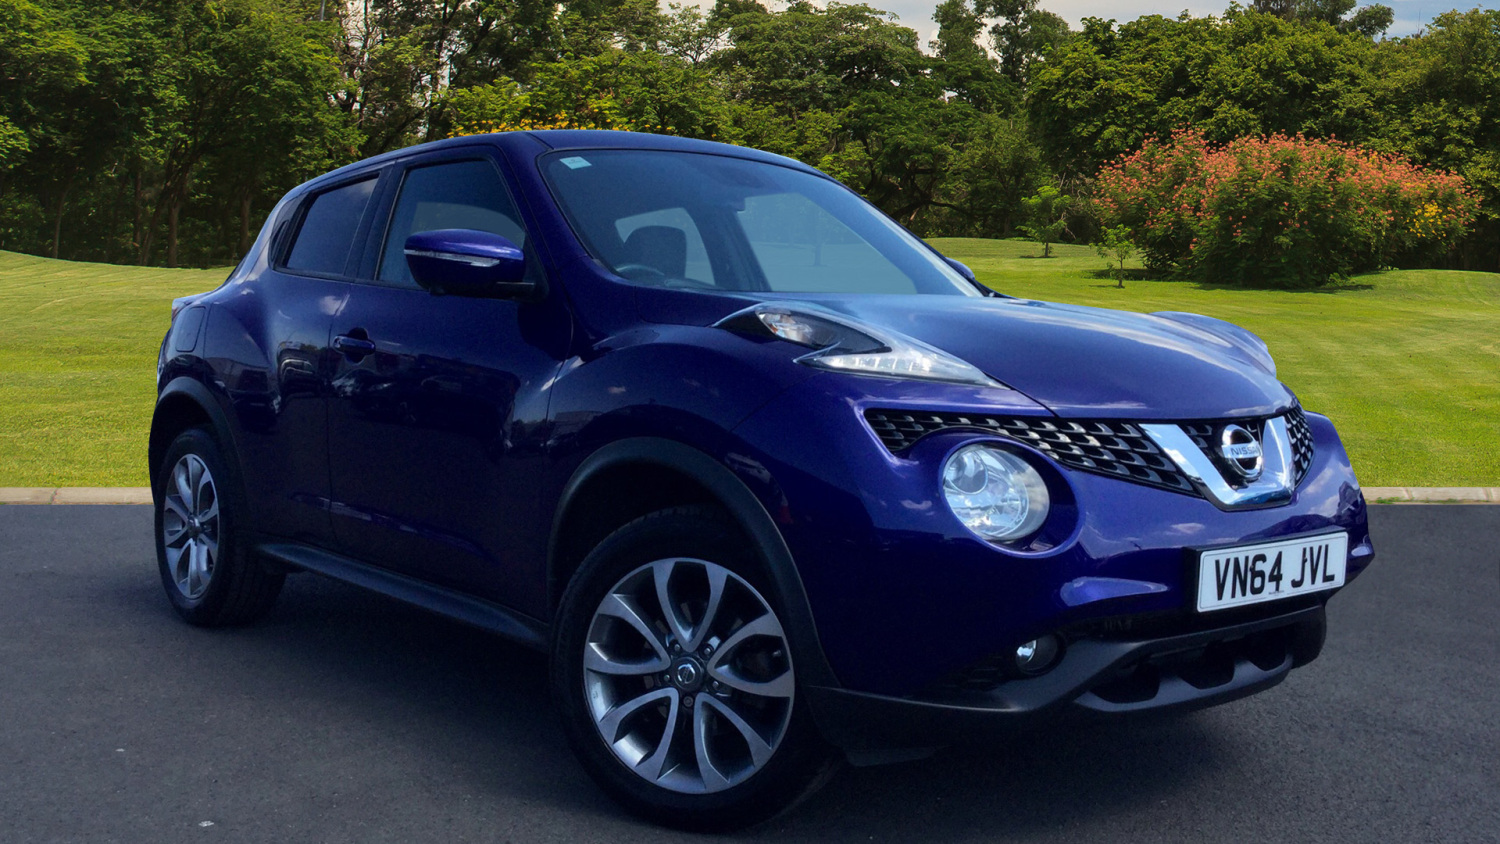 Best Nissan Juke Lease Deals Cheap Nissan Juke Car Leasing And Contract Hire Deals